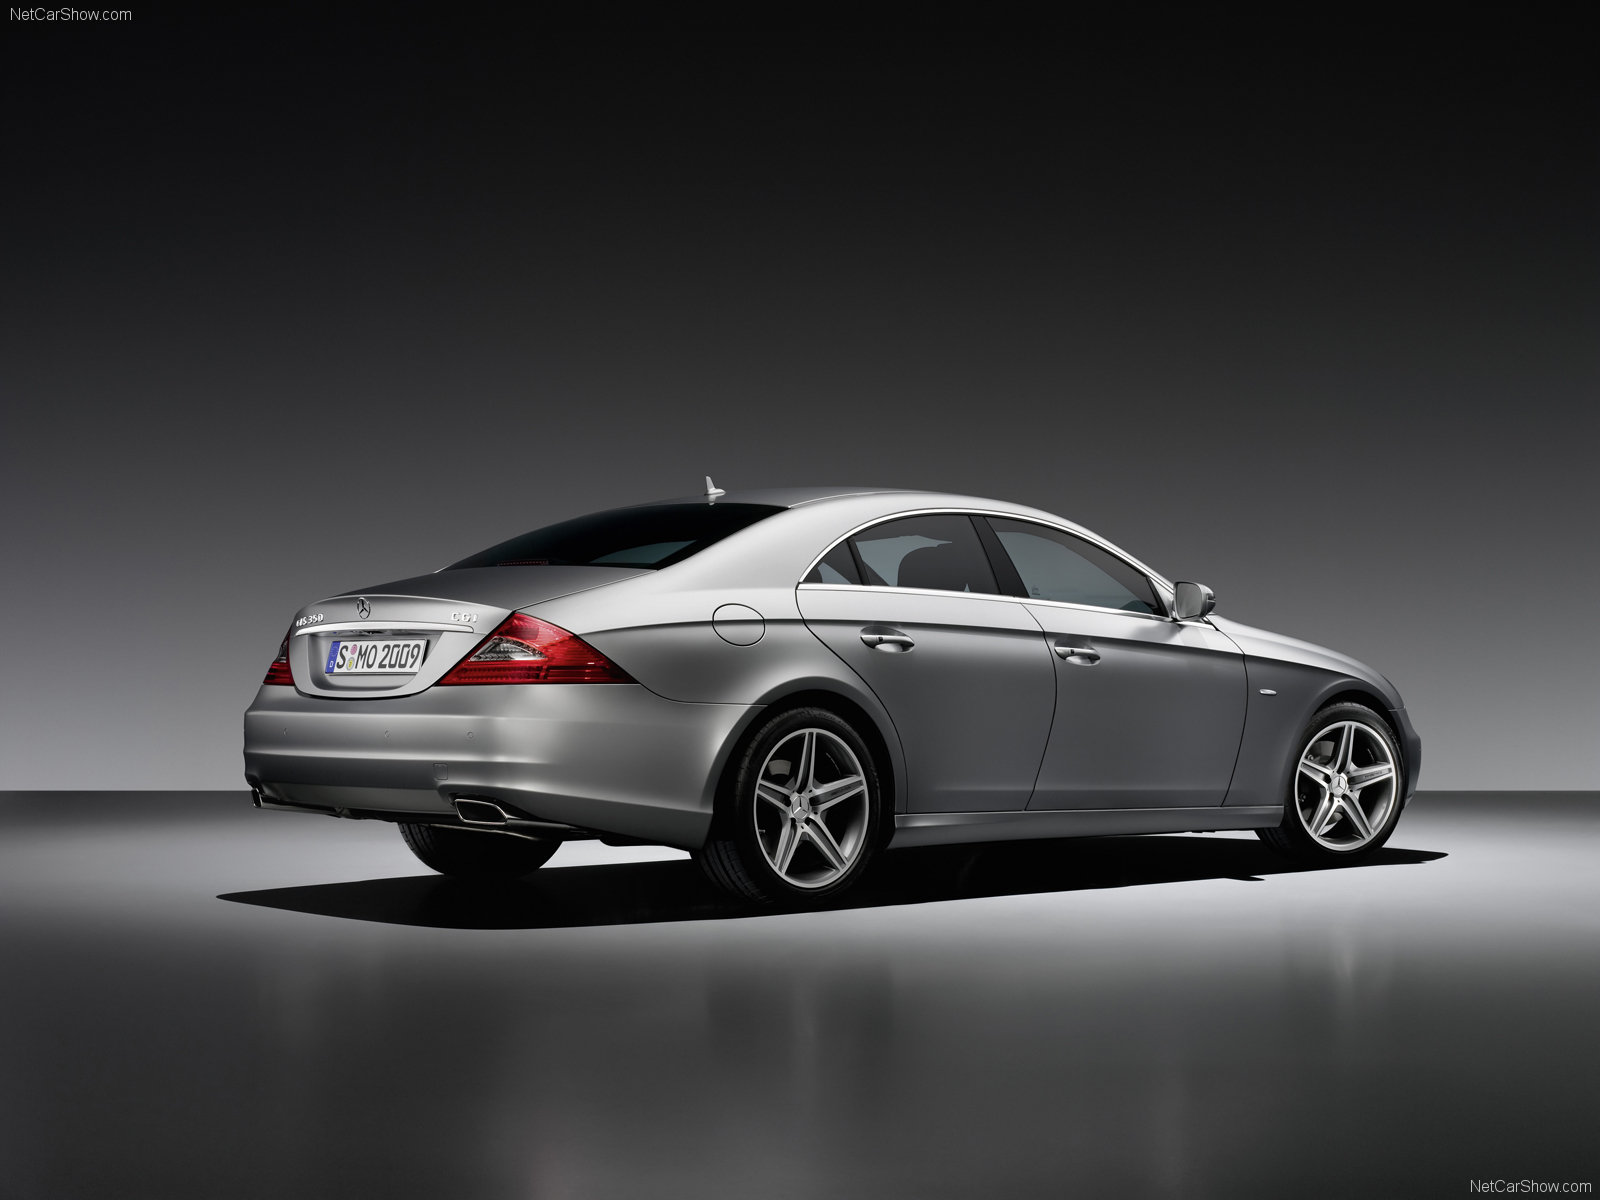 Mercedes-Benz-CLS_Grand_Edition-2009-1600-04.jpg